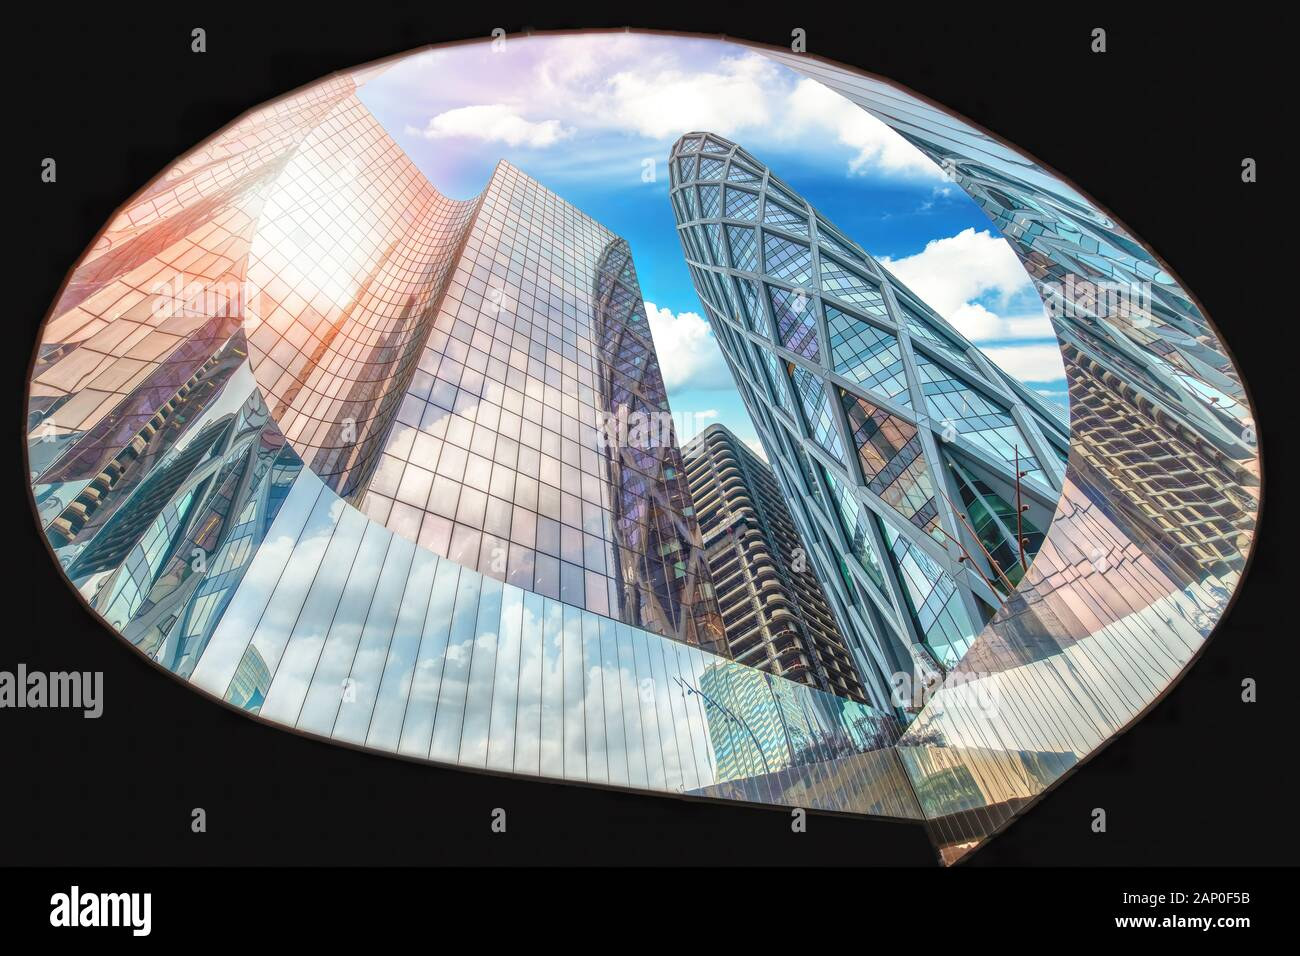 High resolution panoramic view of La Defense Business district in Paris, France Stock Photo